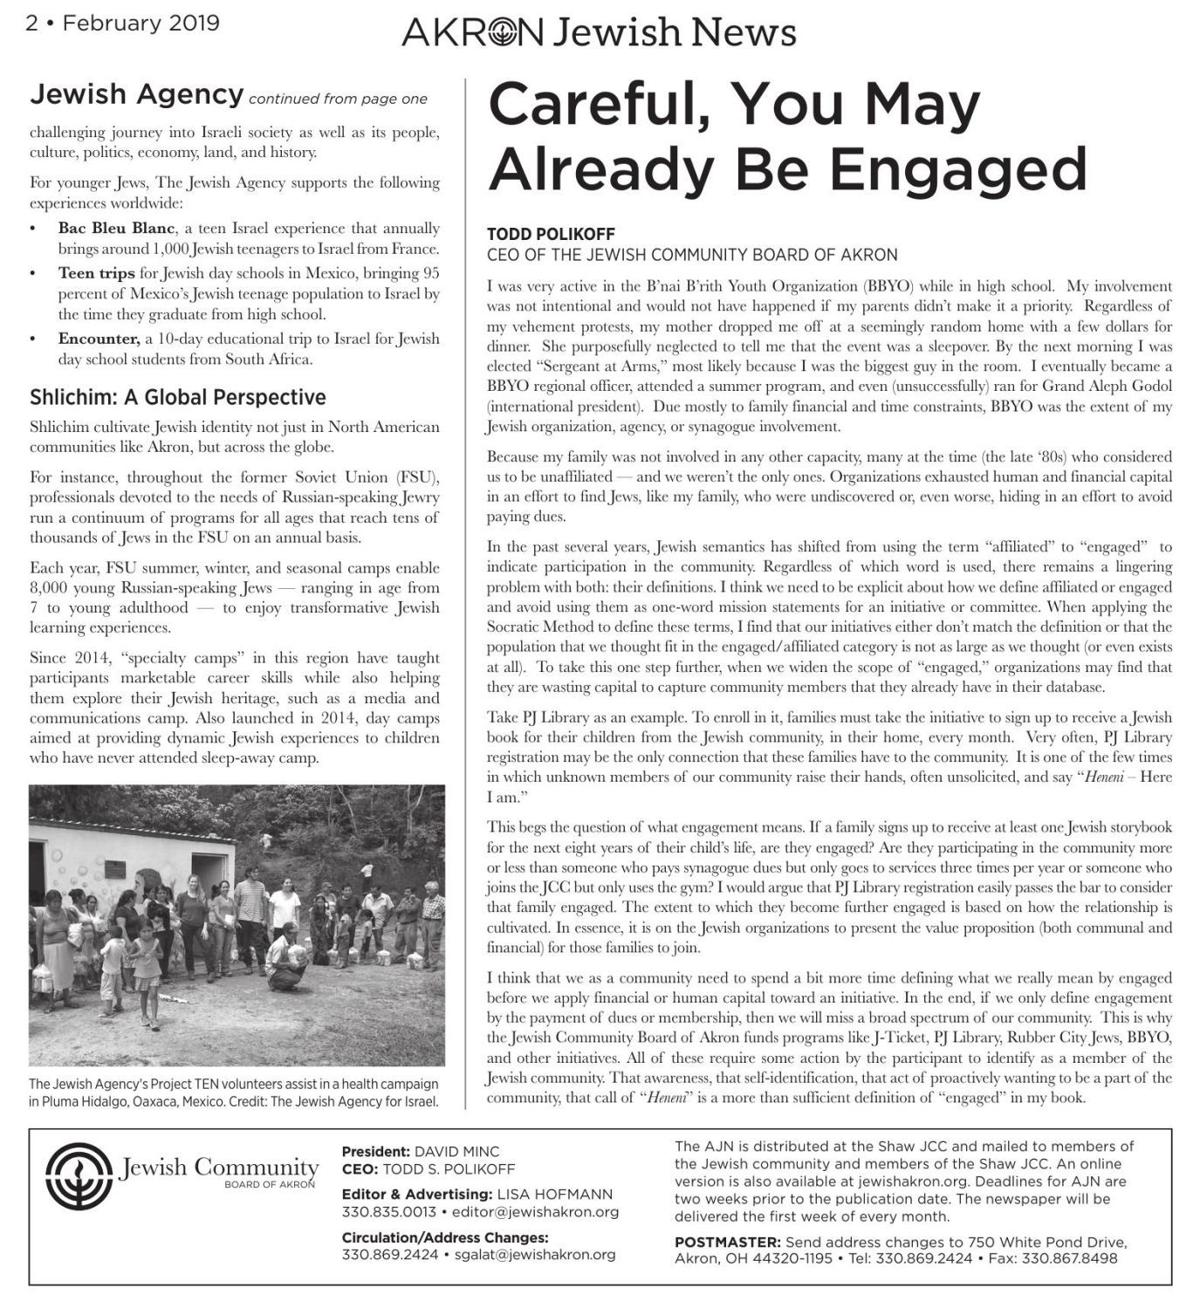 Polikoff's letter to the community in the Akron Jewish News